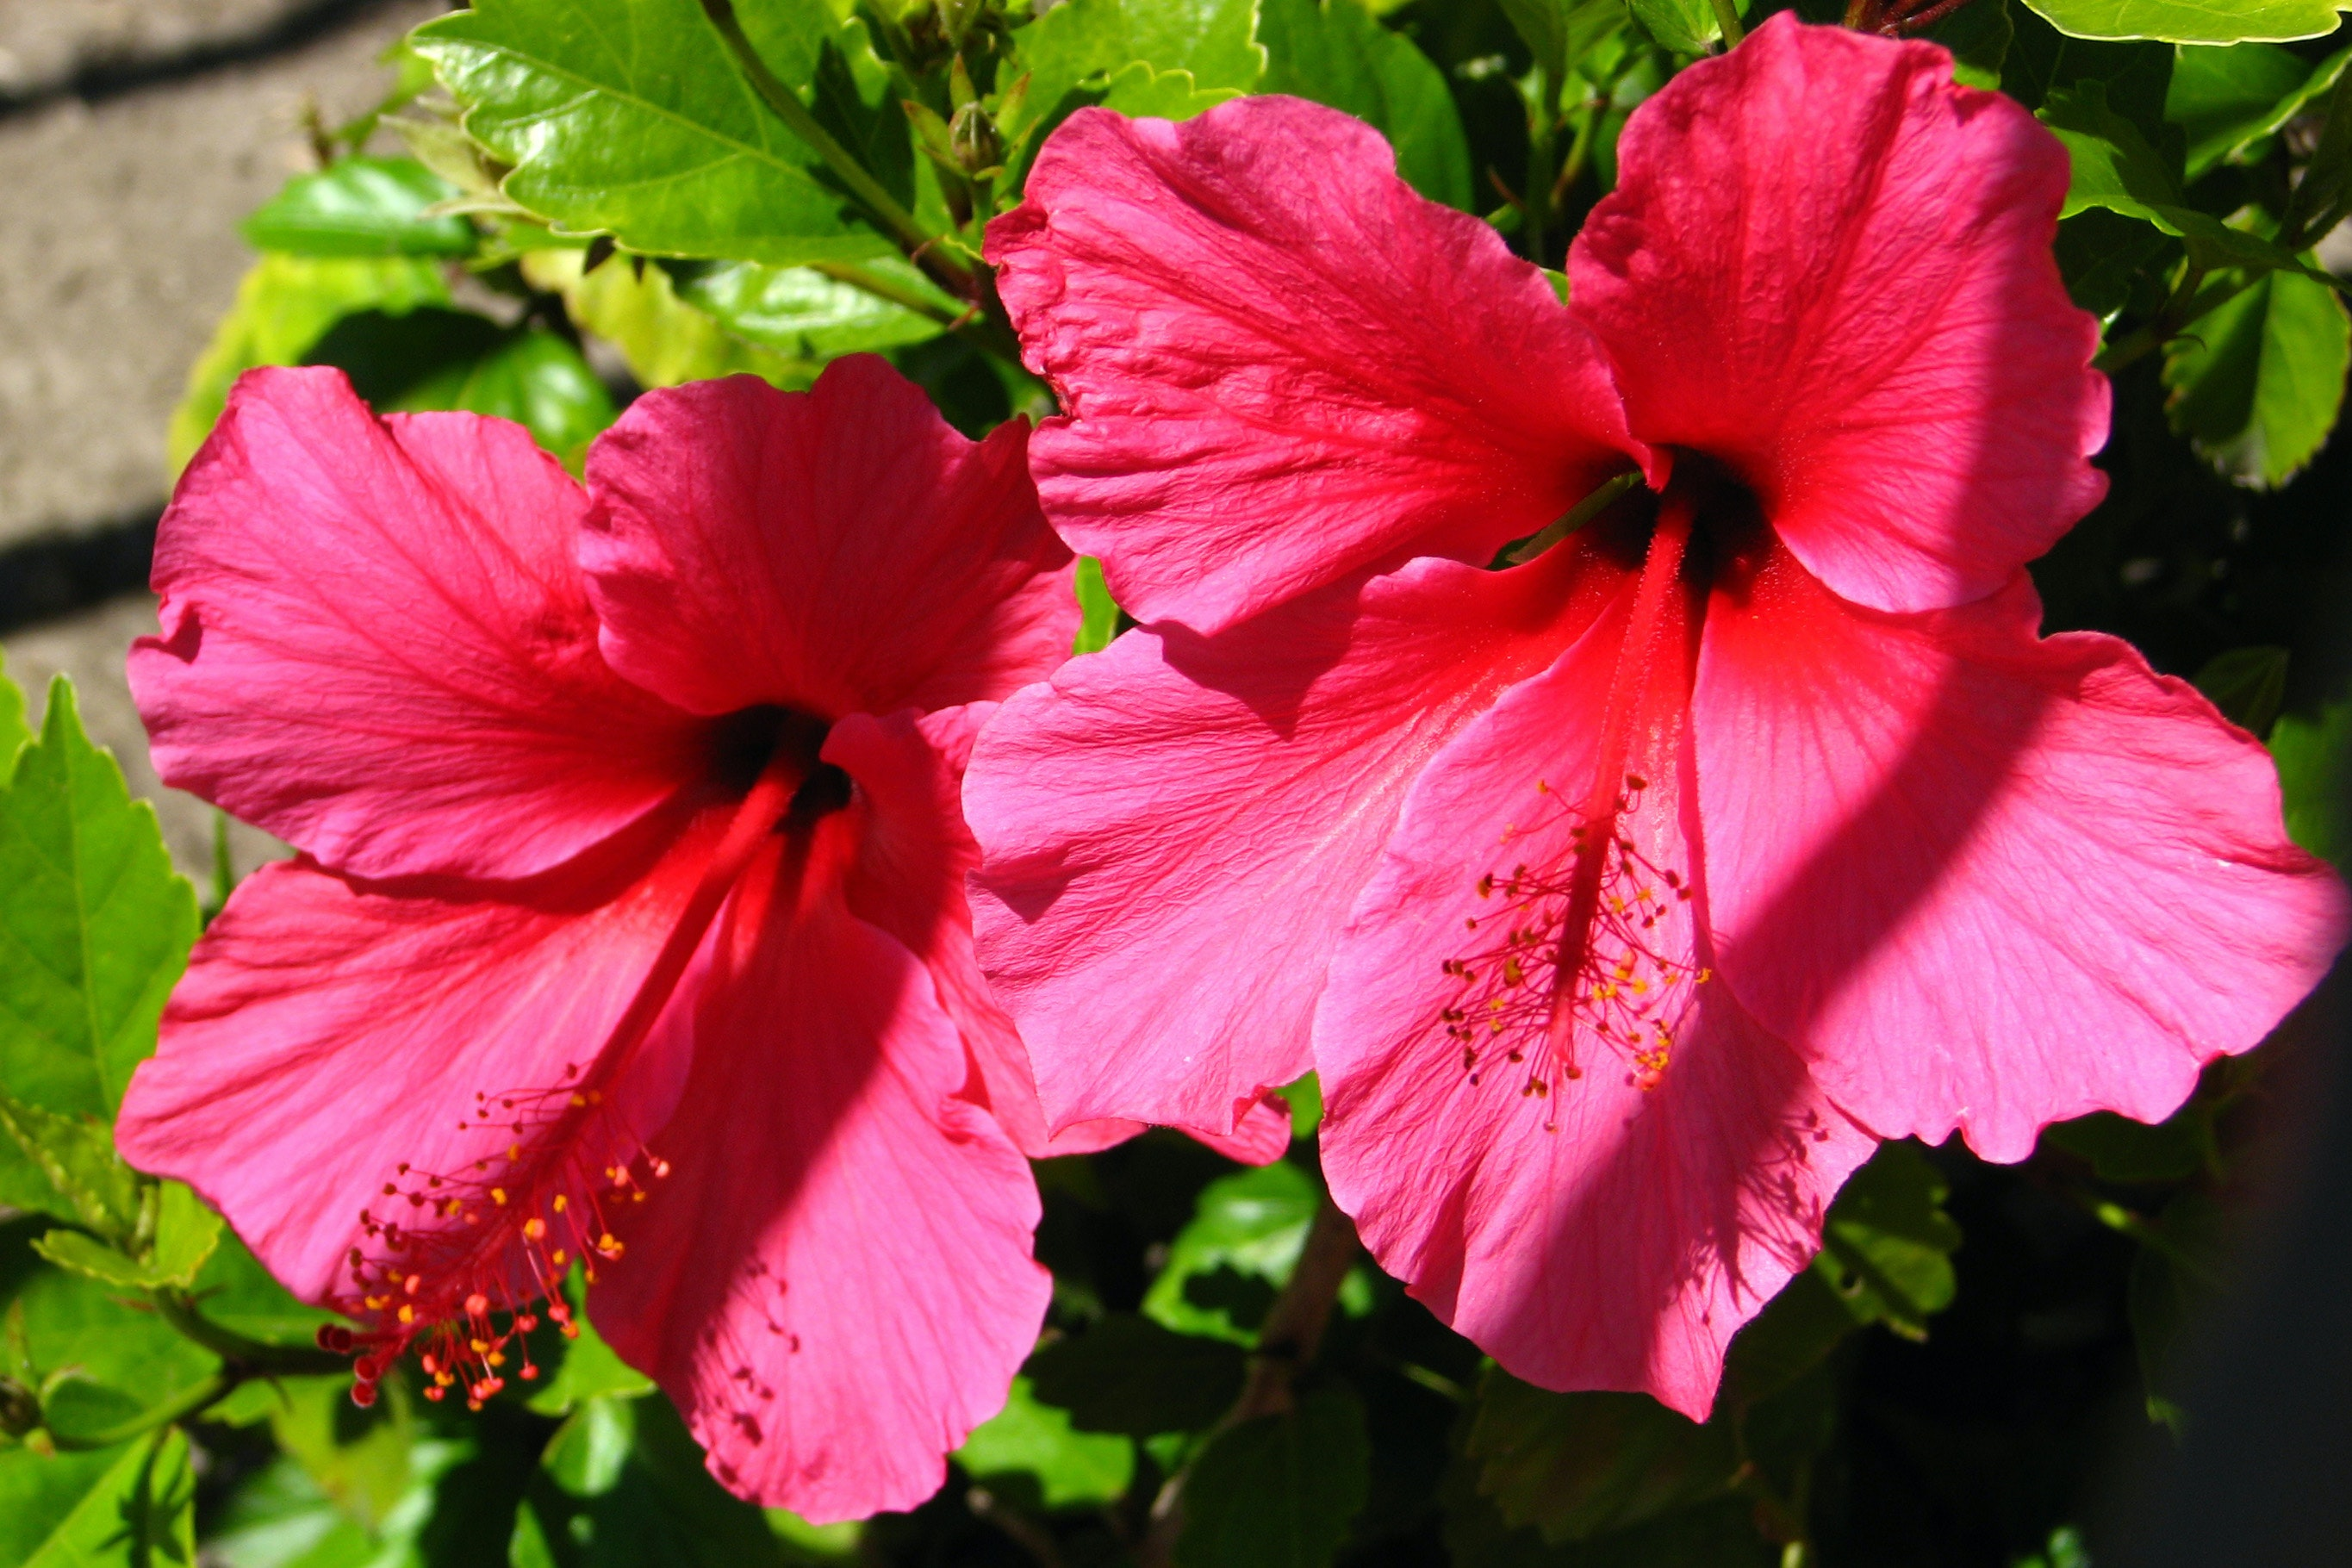 Free stock photo of flower hibiscus nature free download izmirmasajfo Gallery